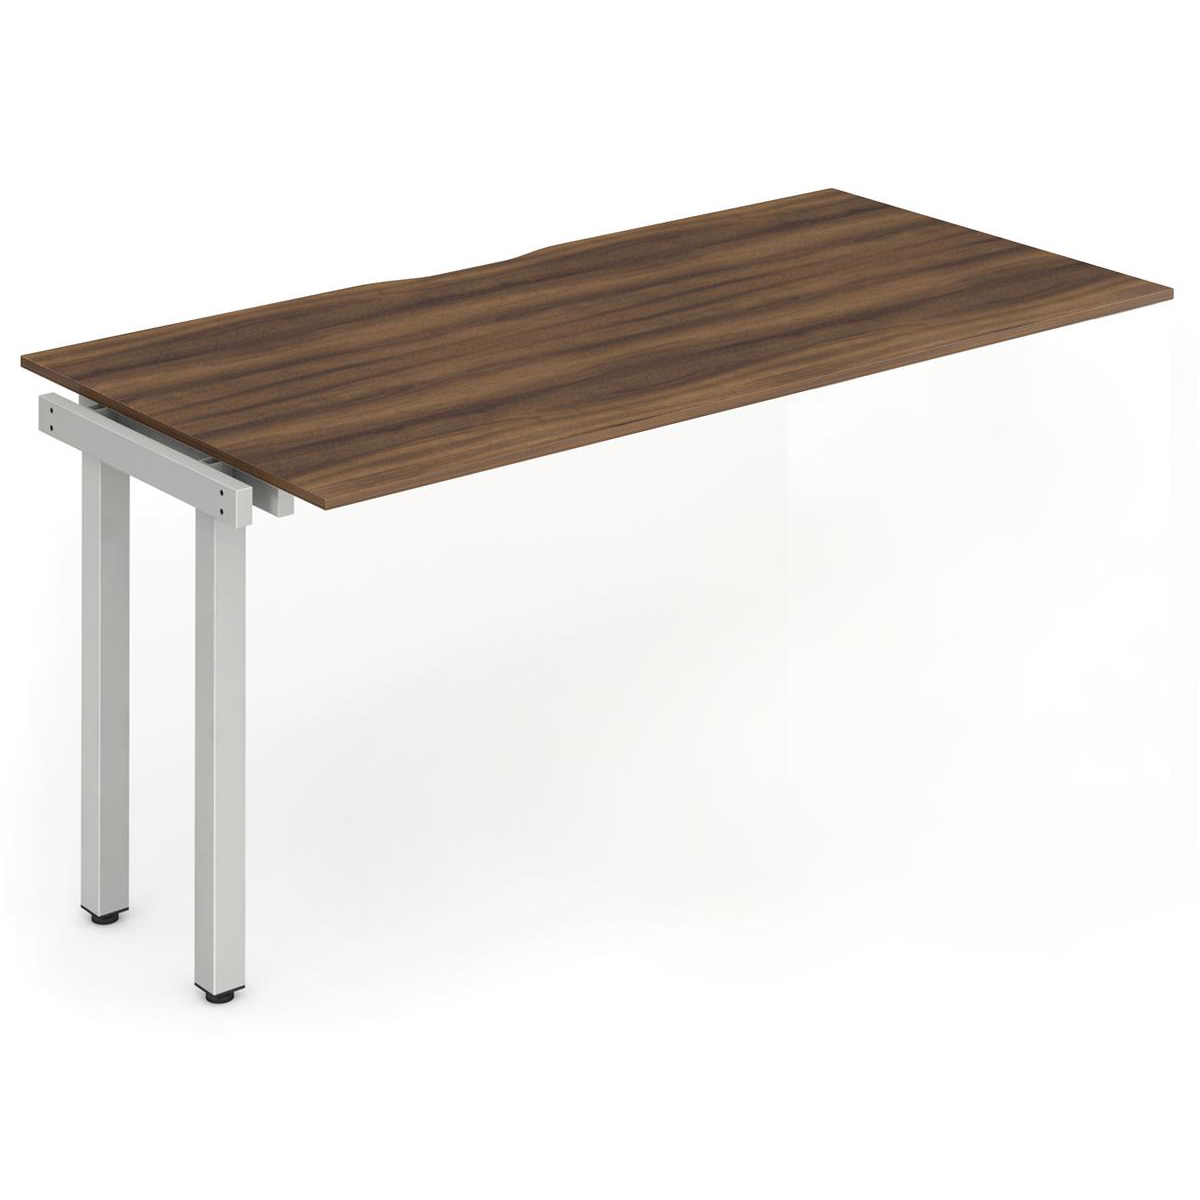 Trexus Bench Desk Single Extension Silver Leg 1200x800mm Walnut Ref BE339